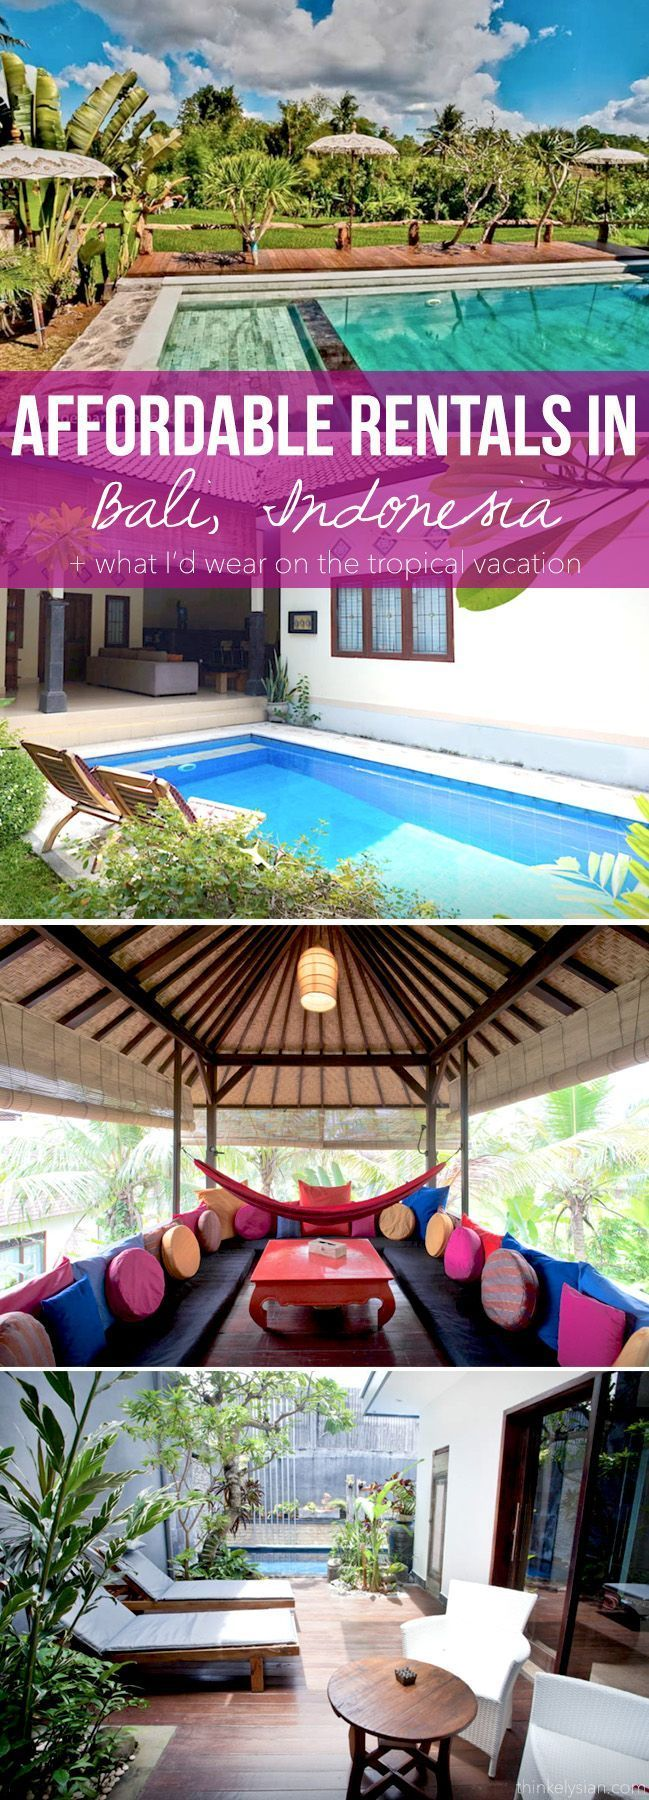 Affordable rentals in Bali + What I'd wear on the tropical vacation // thinkelysian.com